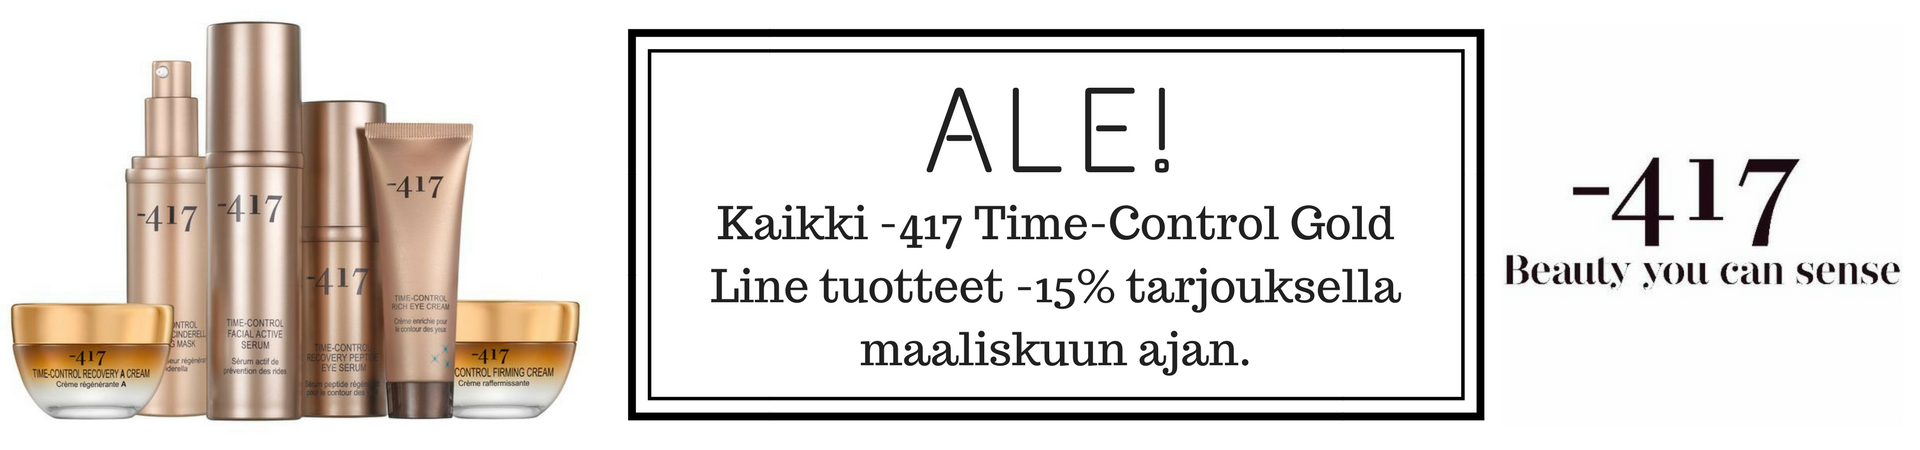 -417 Time control -15%